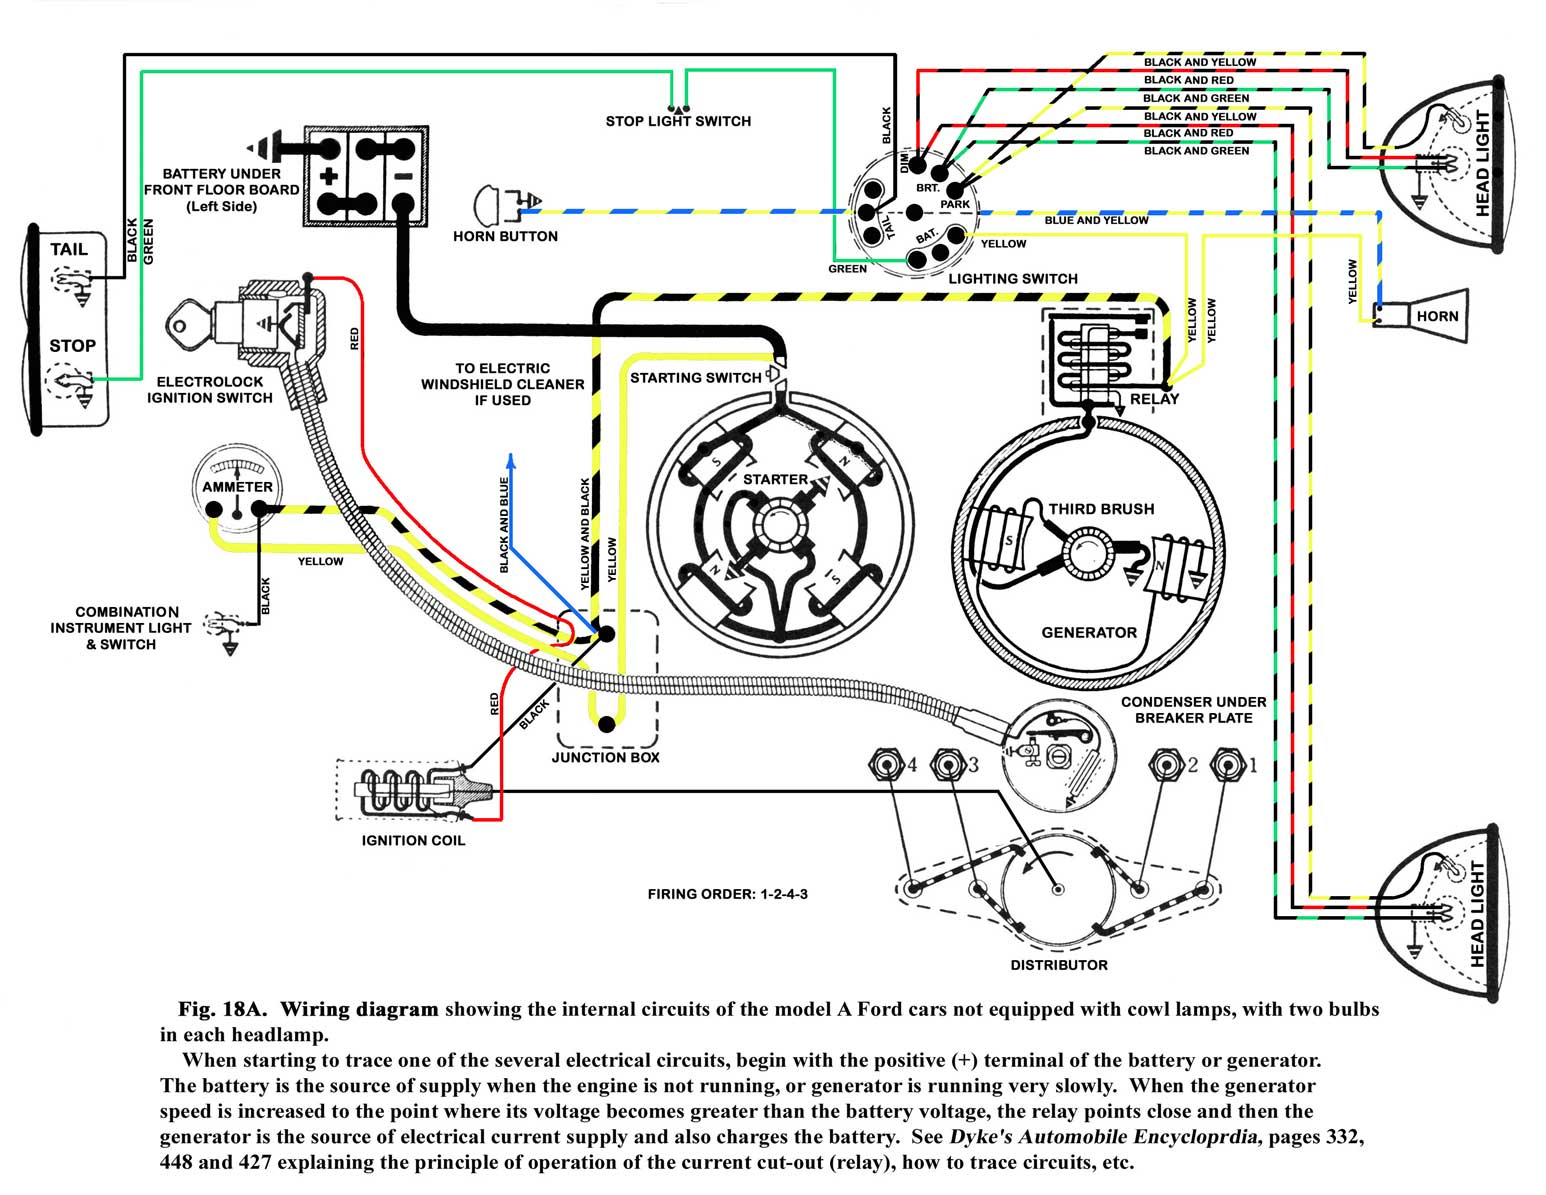 wiring diagramcolor2sm?w\=760?w=500 model a wire diagram kenmore oasis dryer wiring diagram free